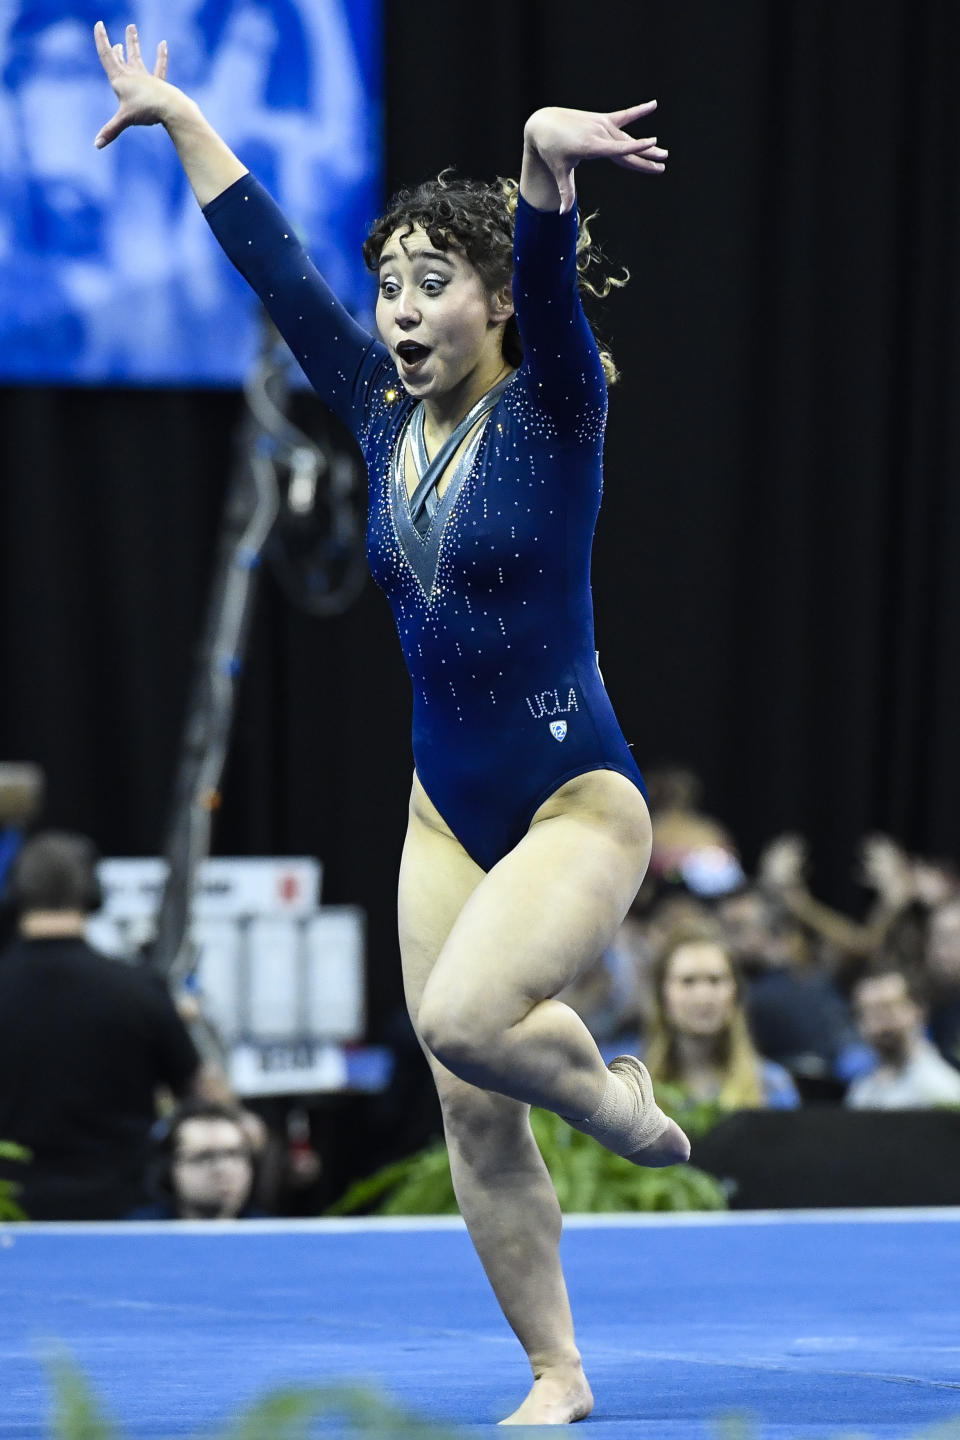 Katelyn Ohashi caps career with a perfect finish